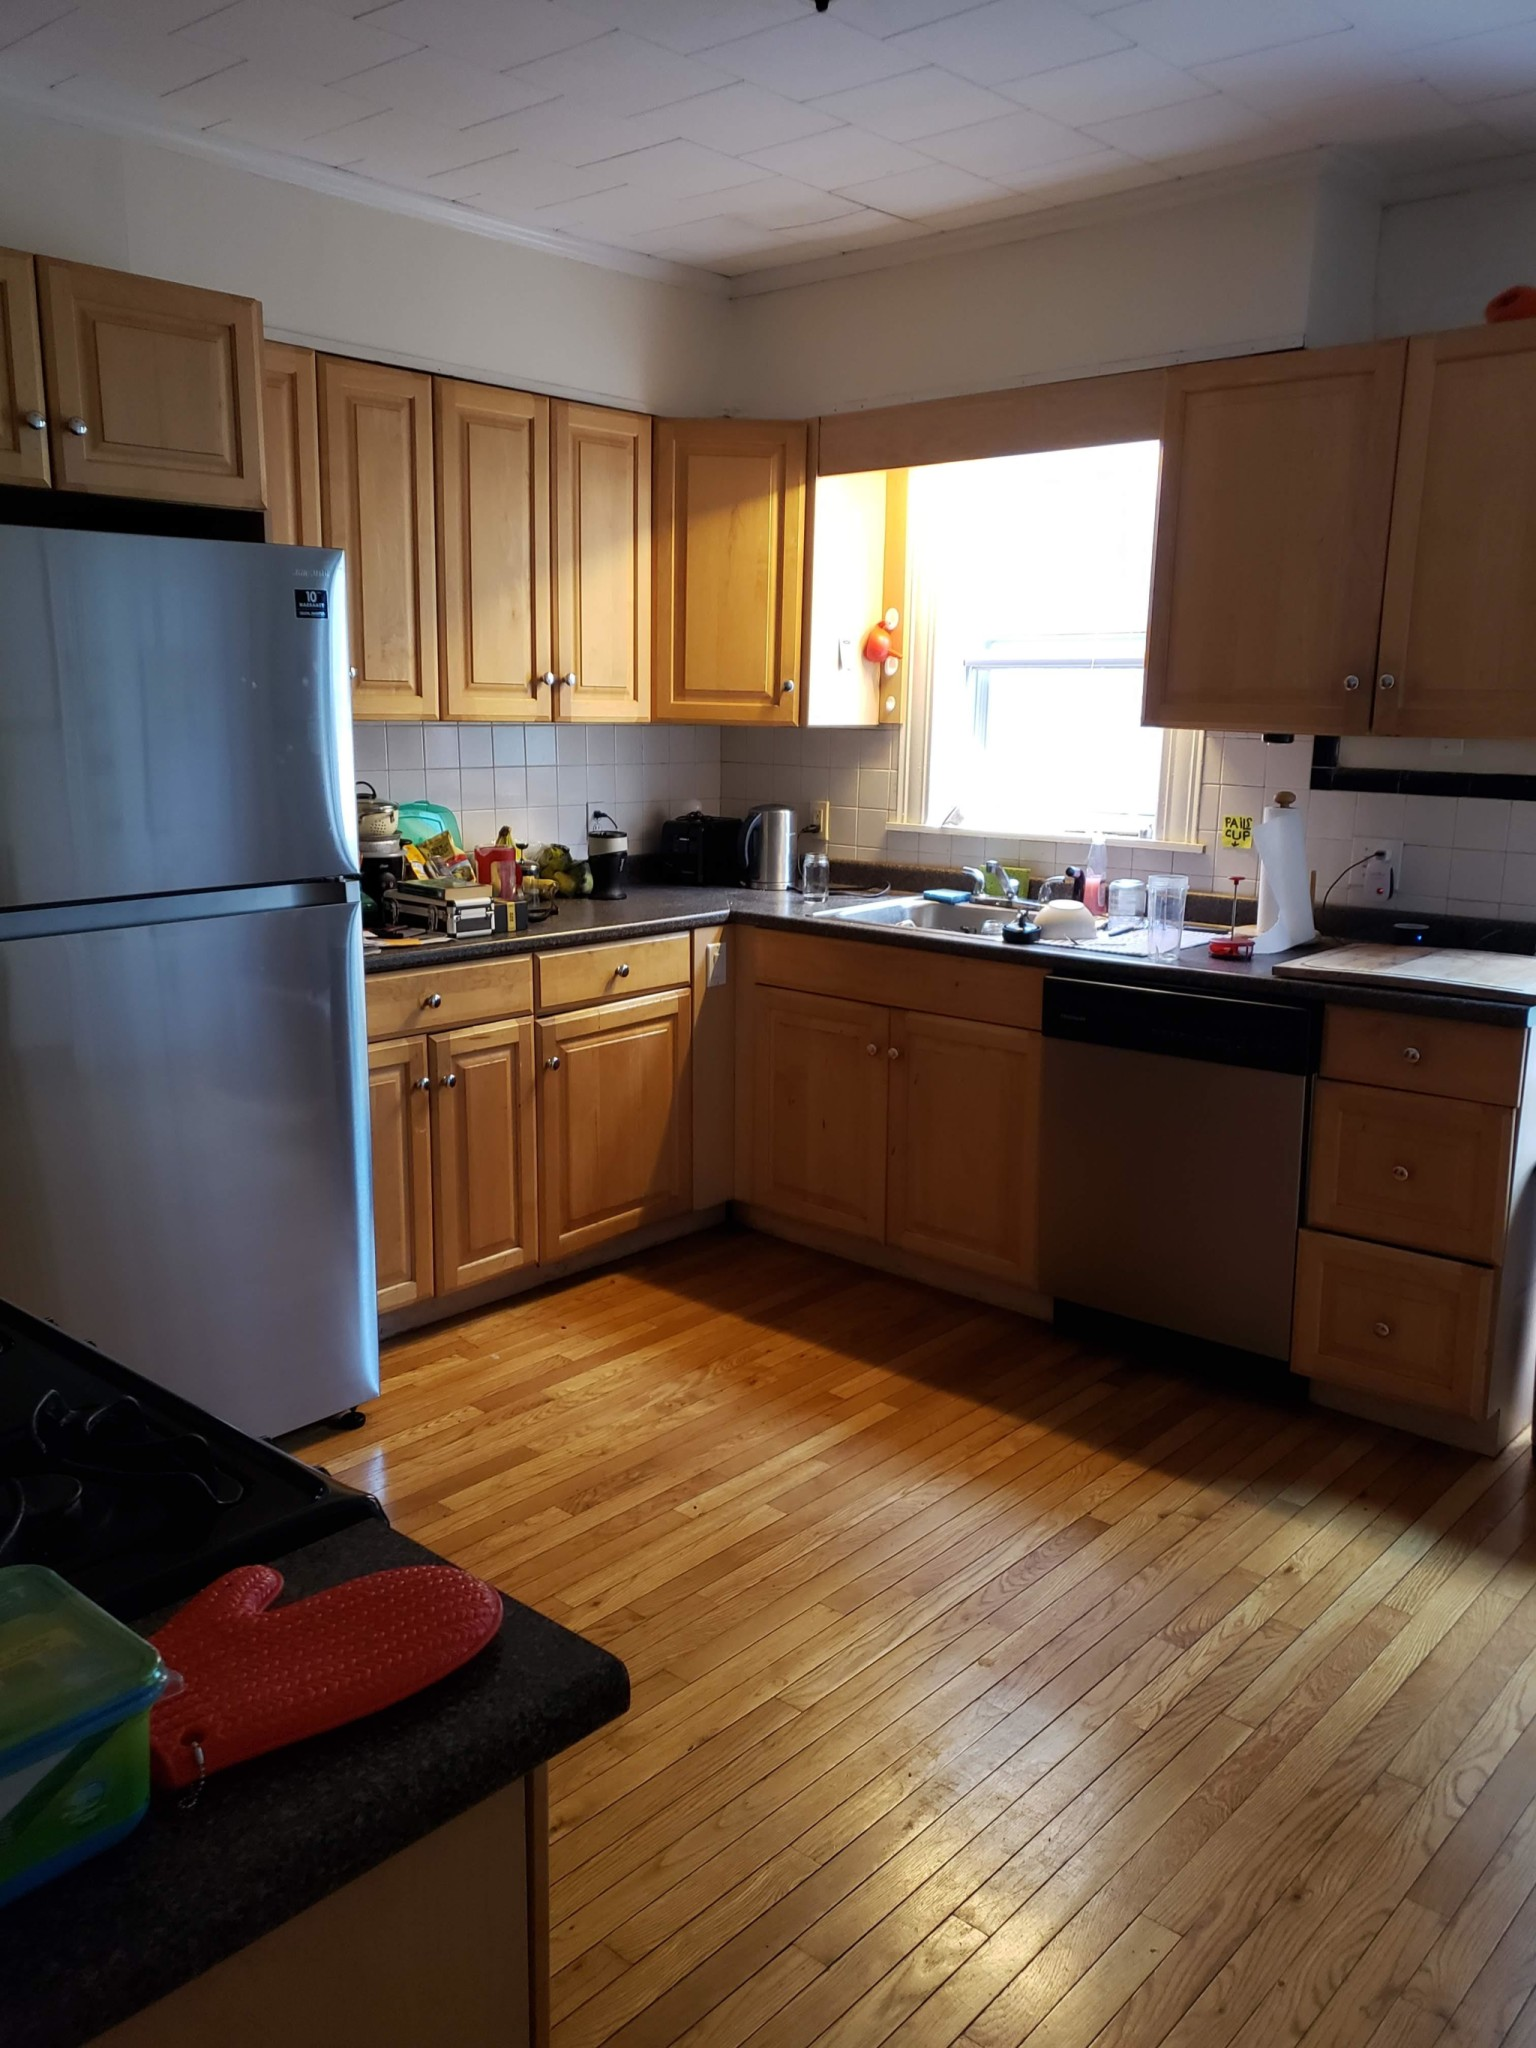 4 Beds, 1 Bath apartment in Brookline for $700